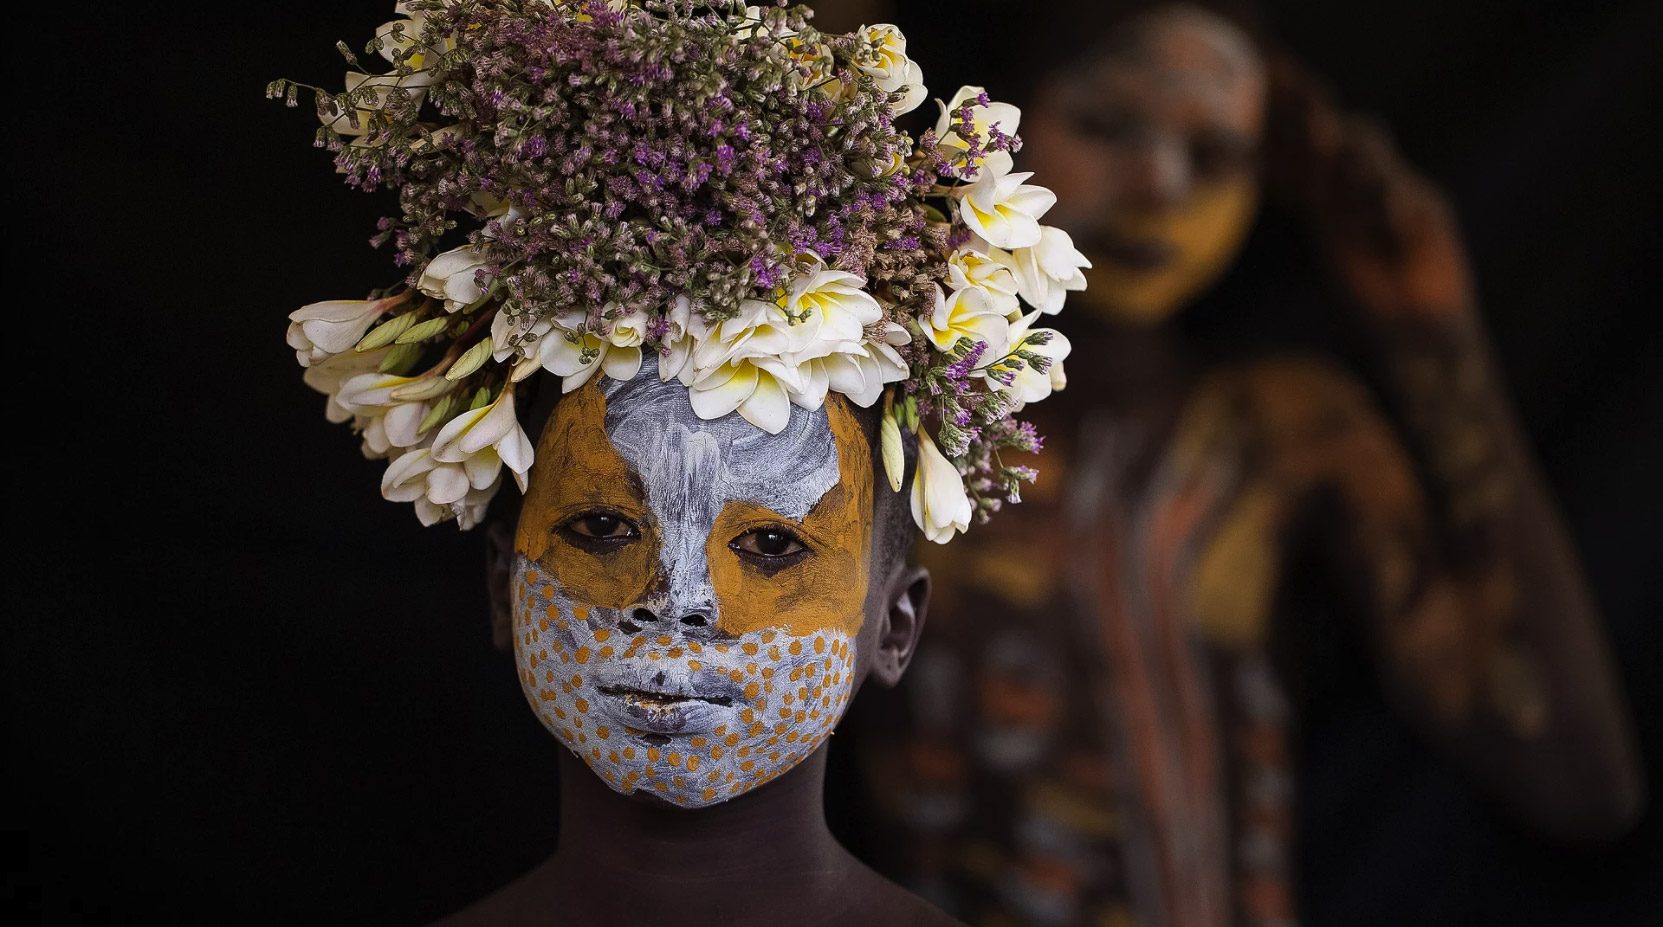 Flowers of Ethiopia, © Robin Young, Residency Prize, Portraits – Hellerau Photography Award